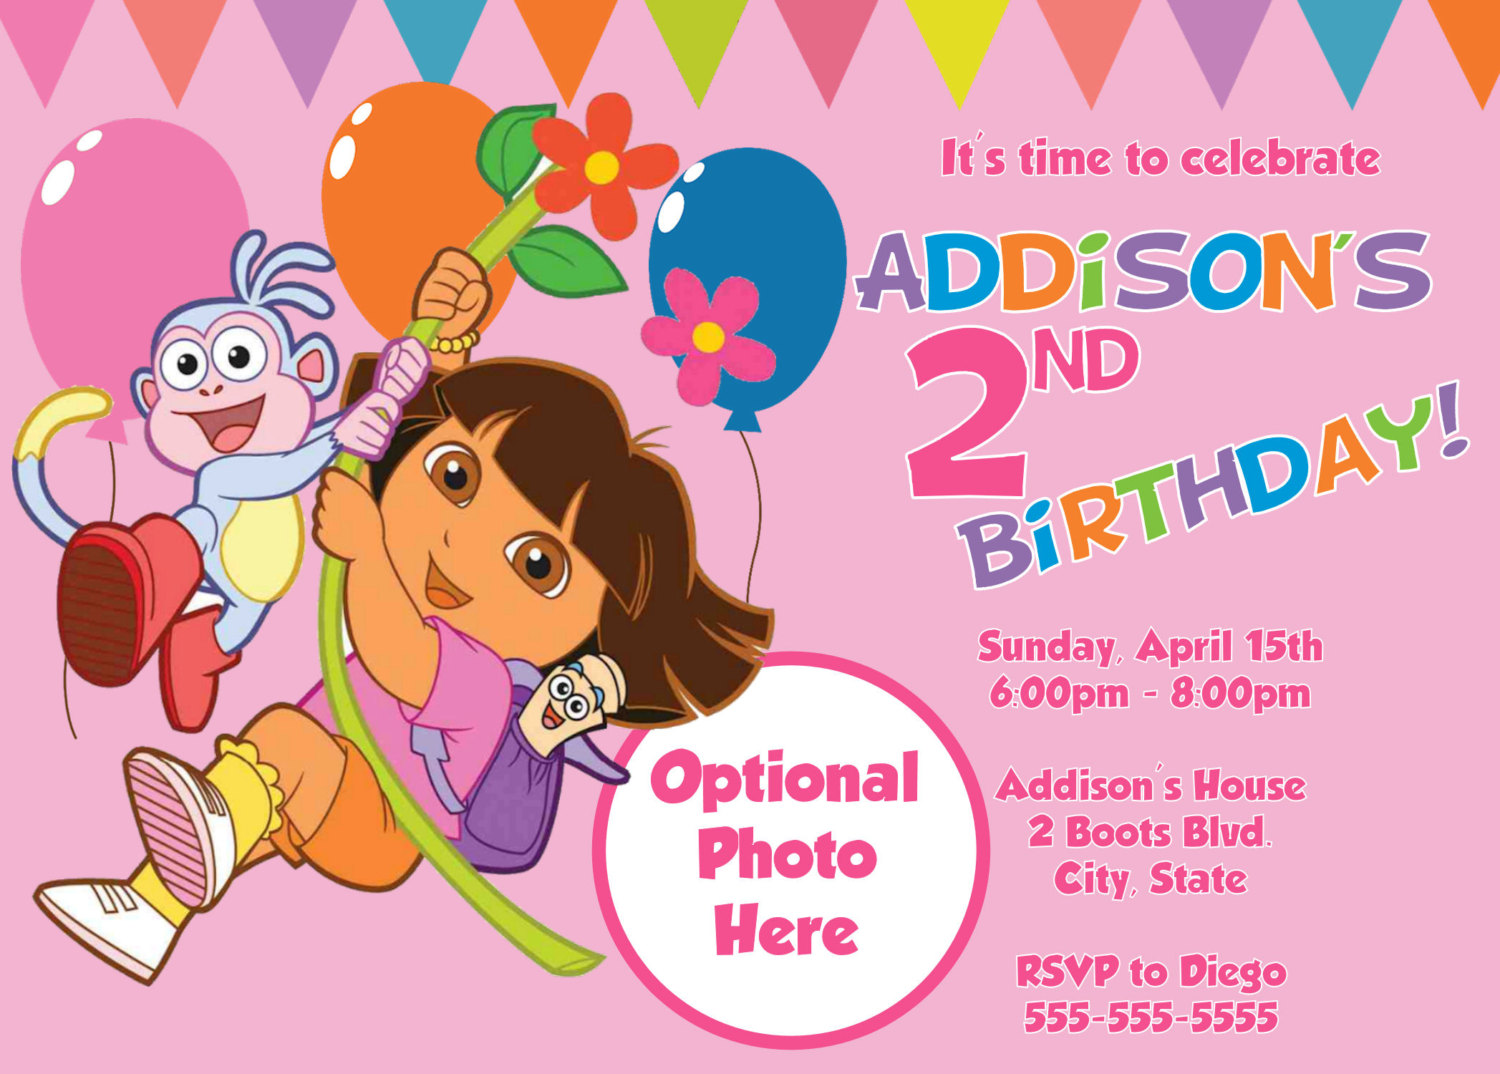 Dora the explorer birthday party invitations dolanpedia dora filmwisefo